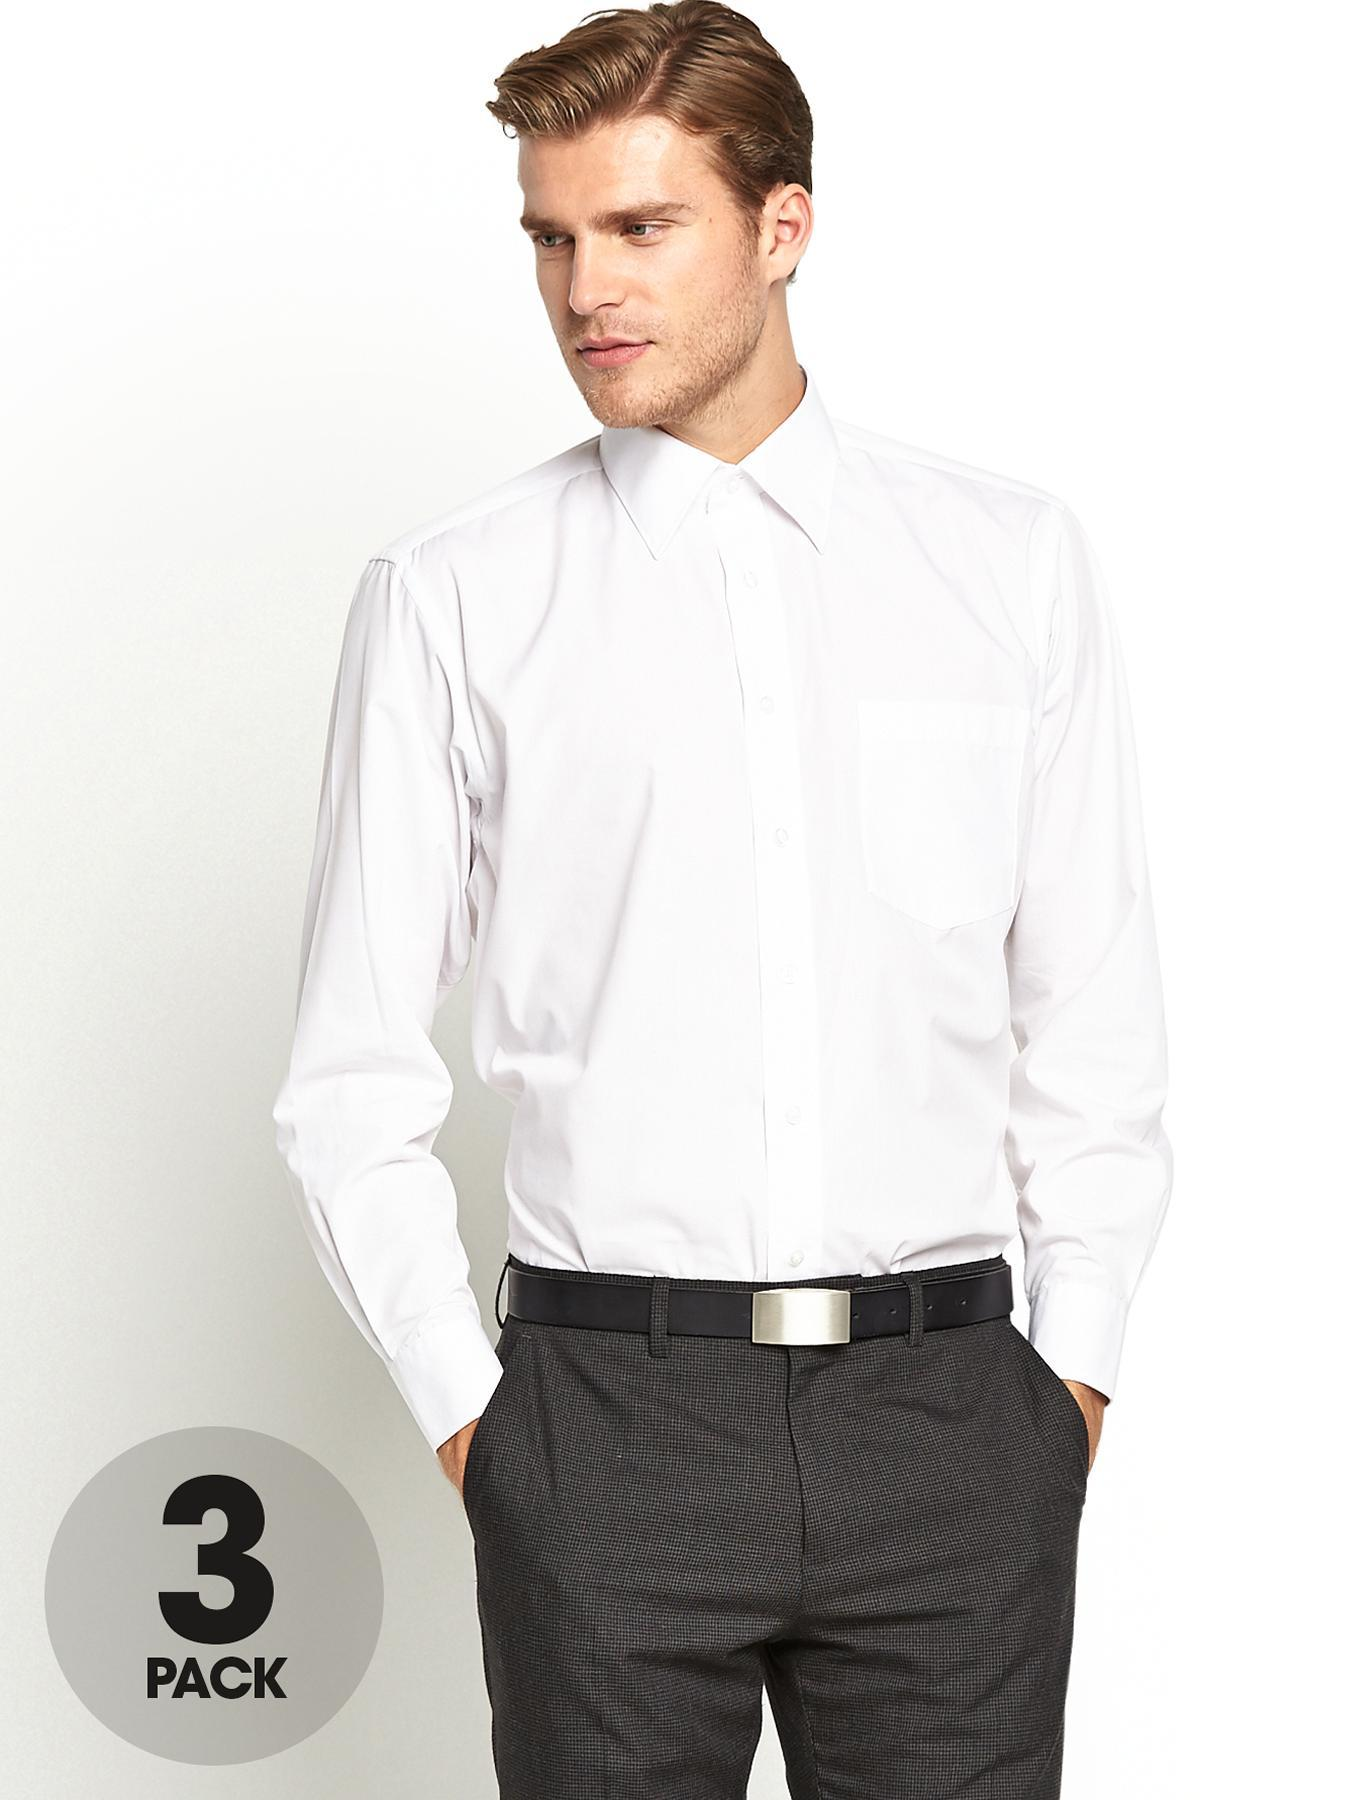 Mens Regular Fit Shirts (3 Pack) - White, White